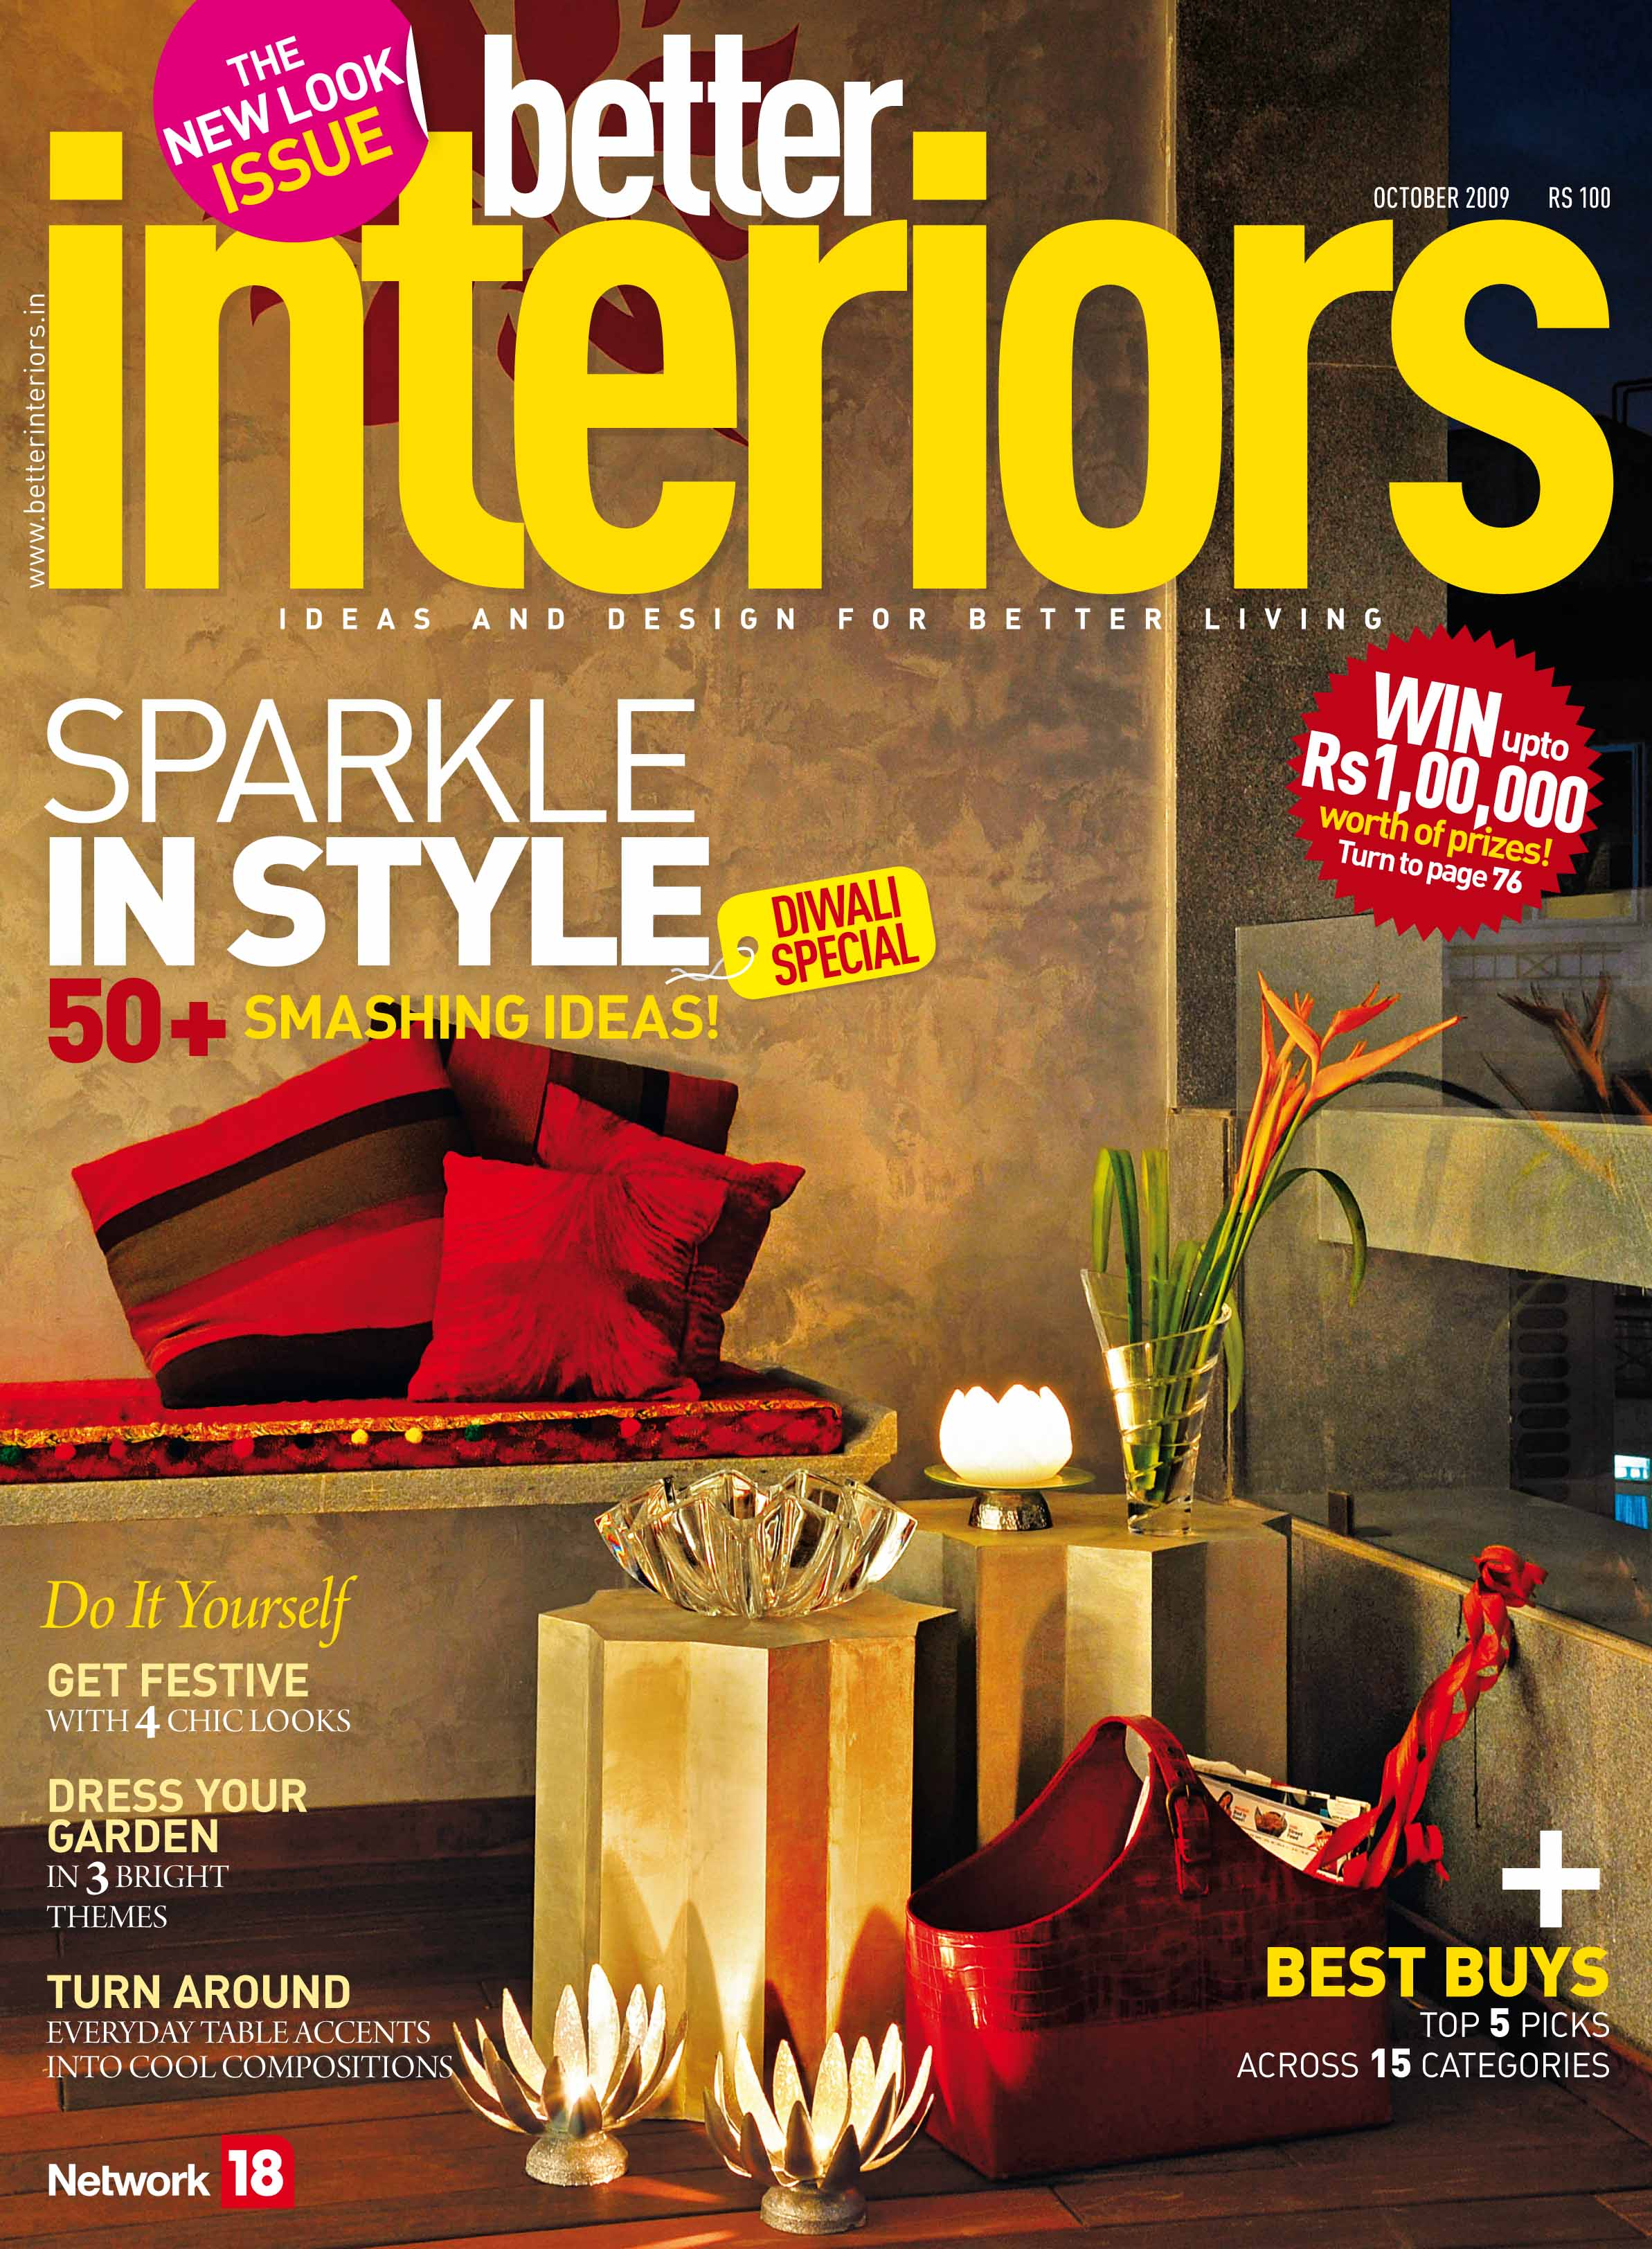 Better interiors by prachi malandkar phondba at Interior magazine